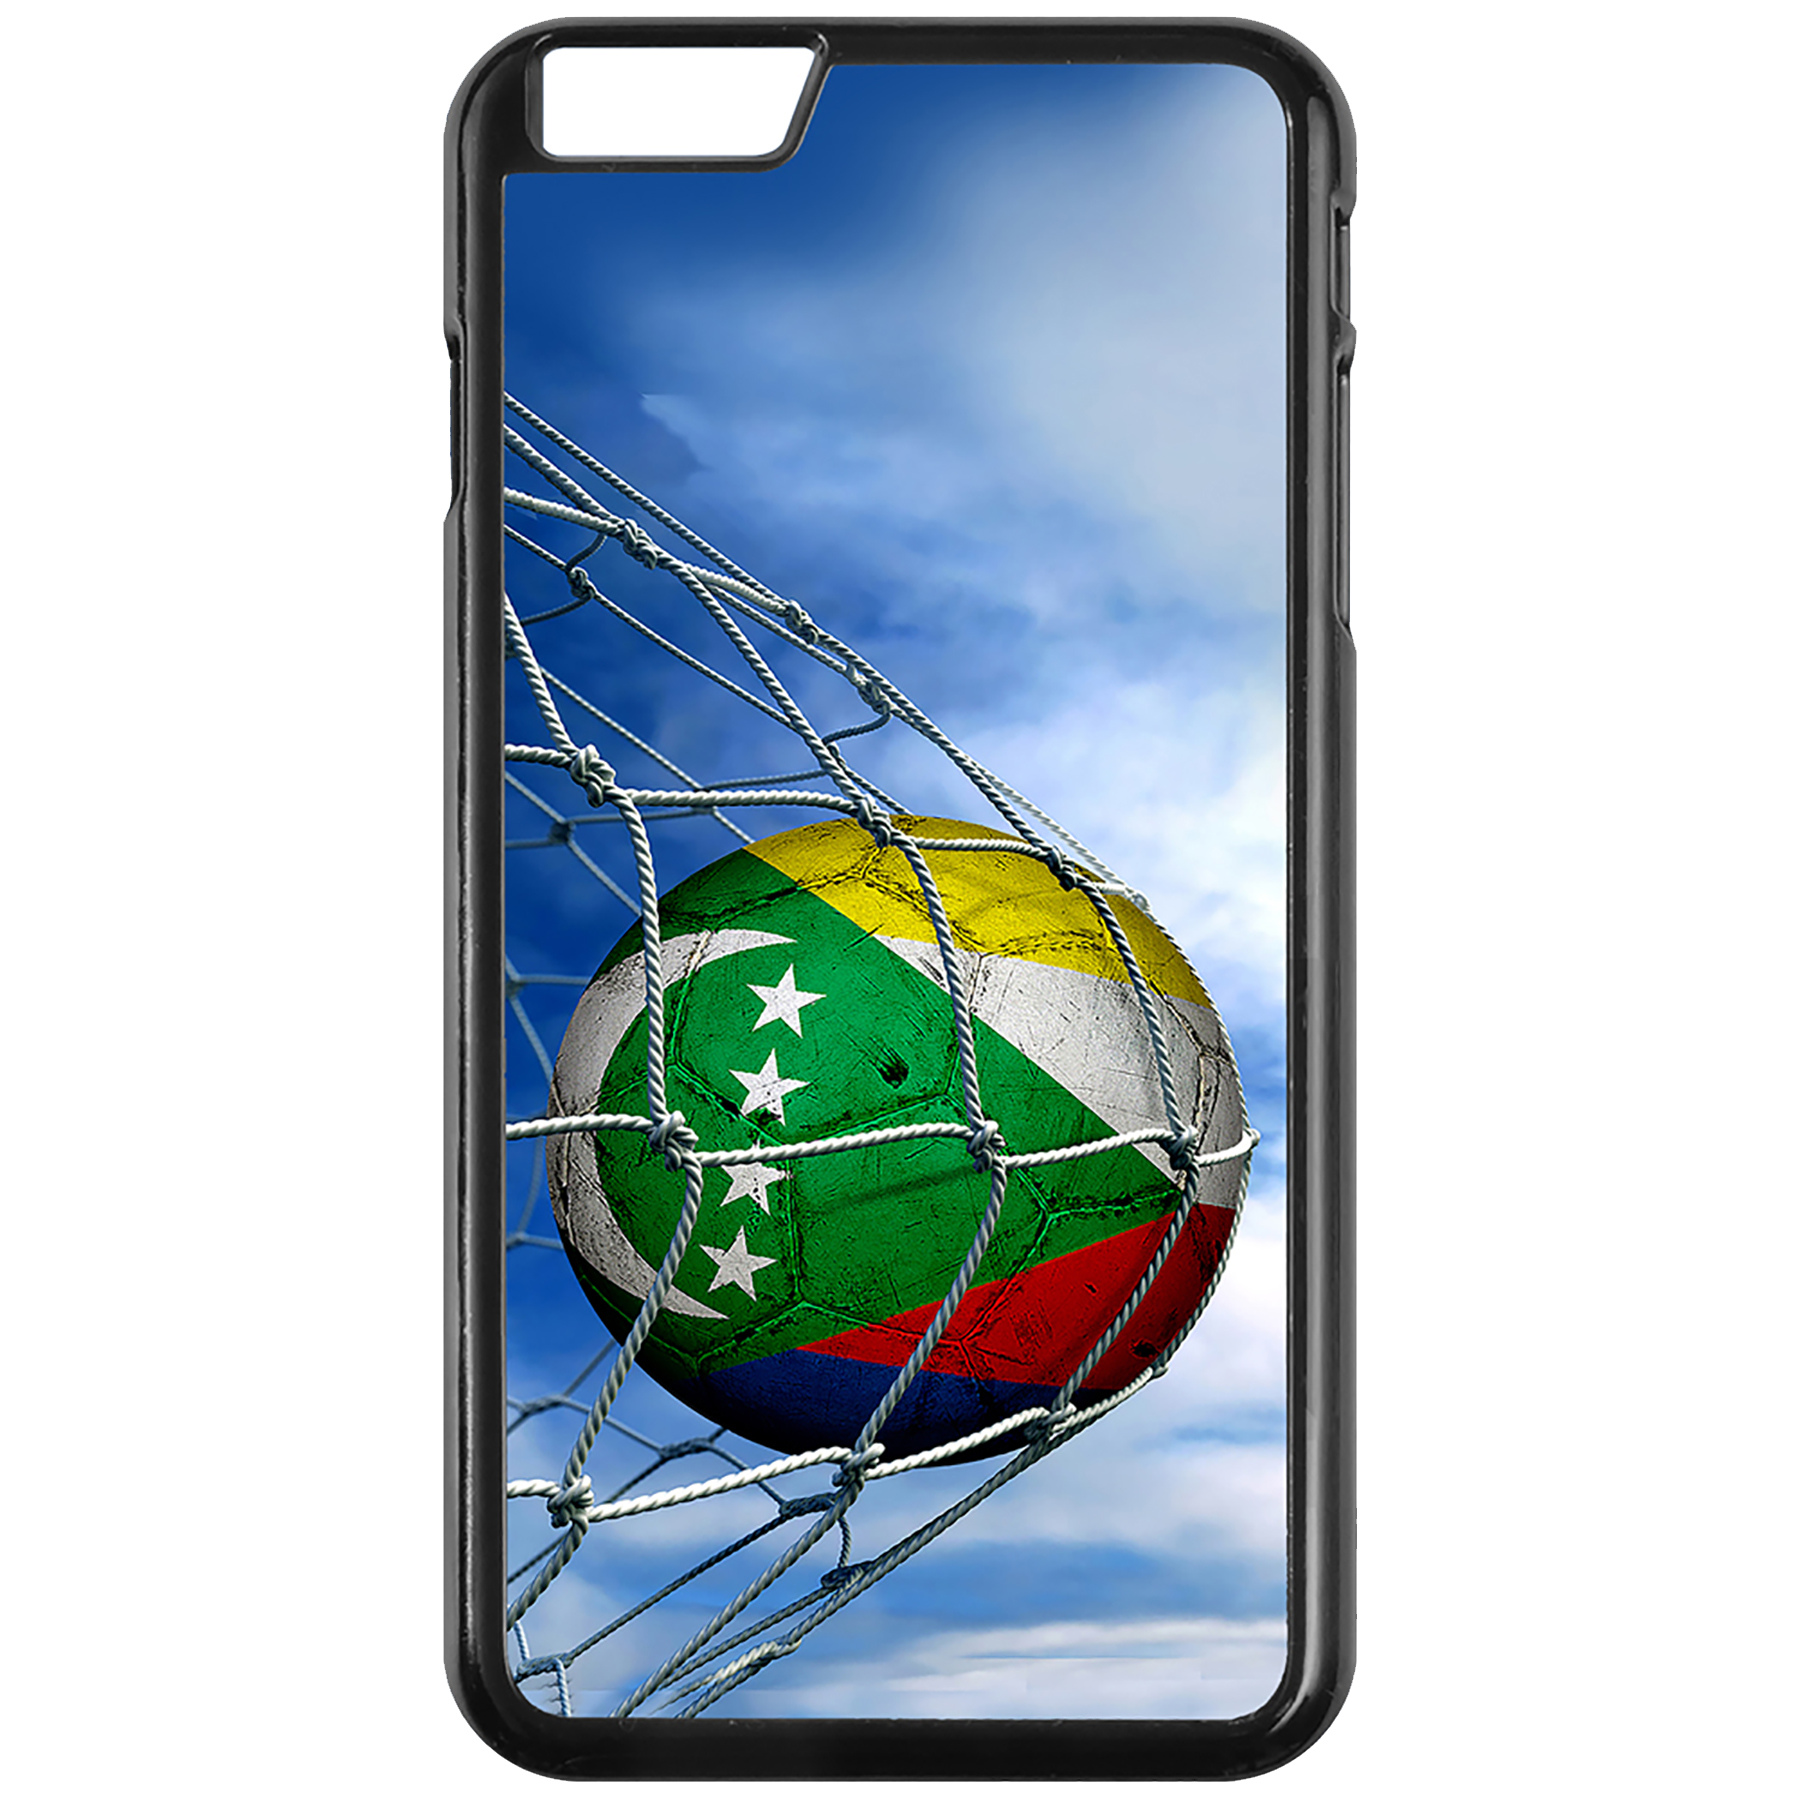 Apple-iPhone-Case-with-Flag-of-Comoros-Comorian-Many-Design-Options thumbnail 93